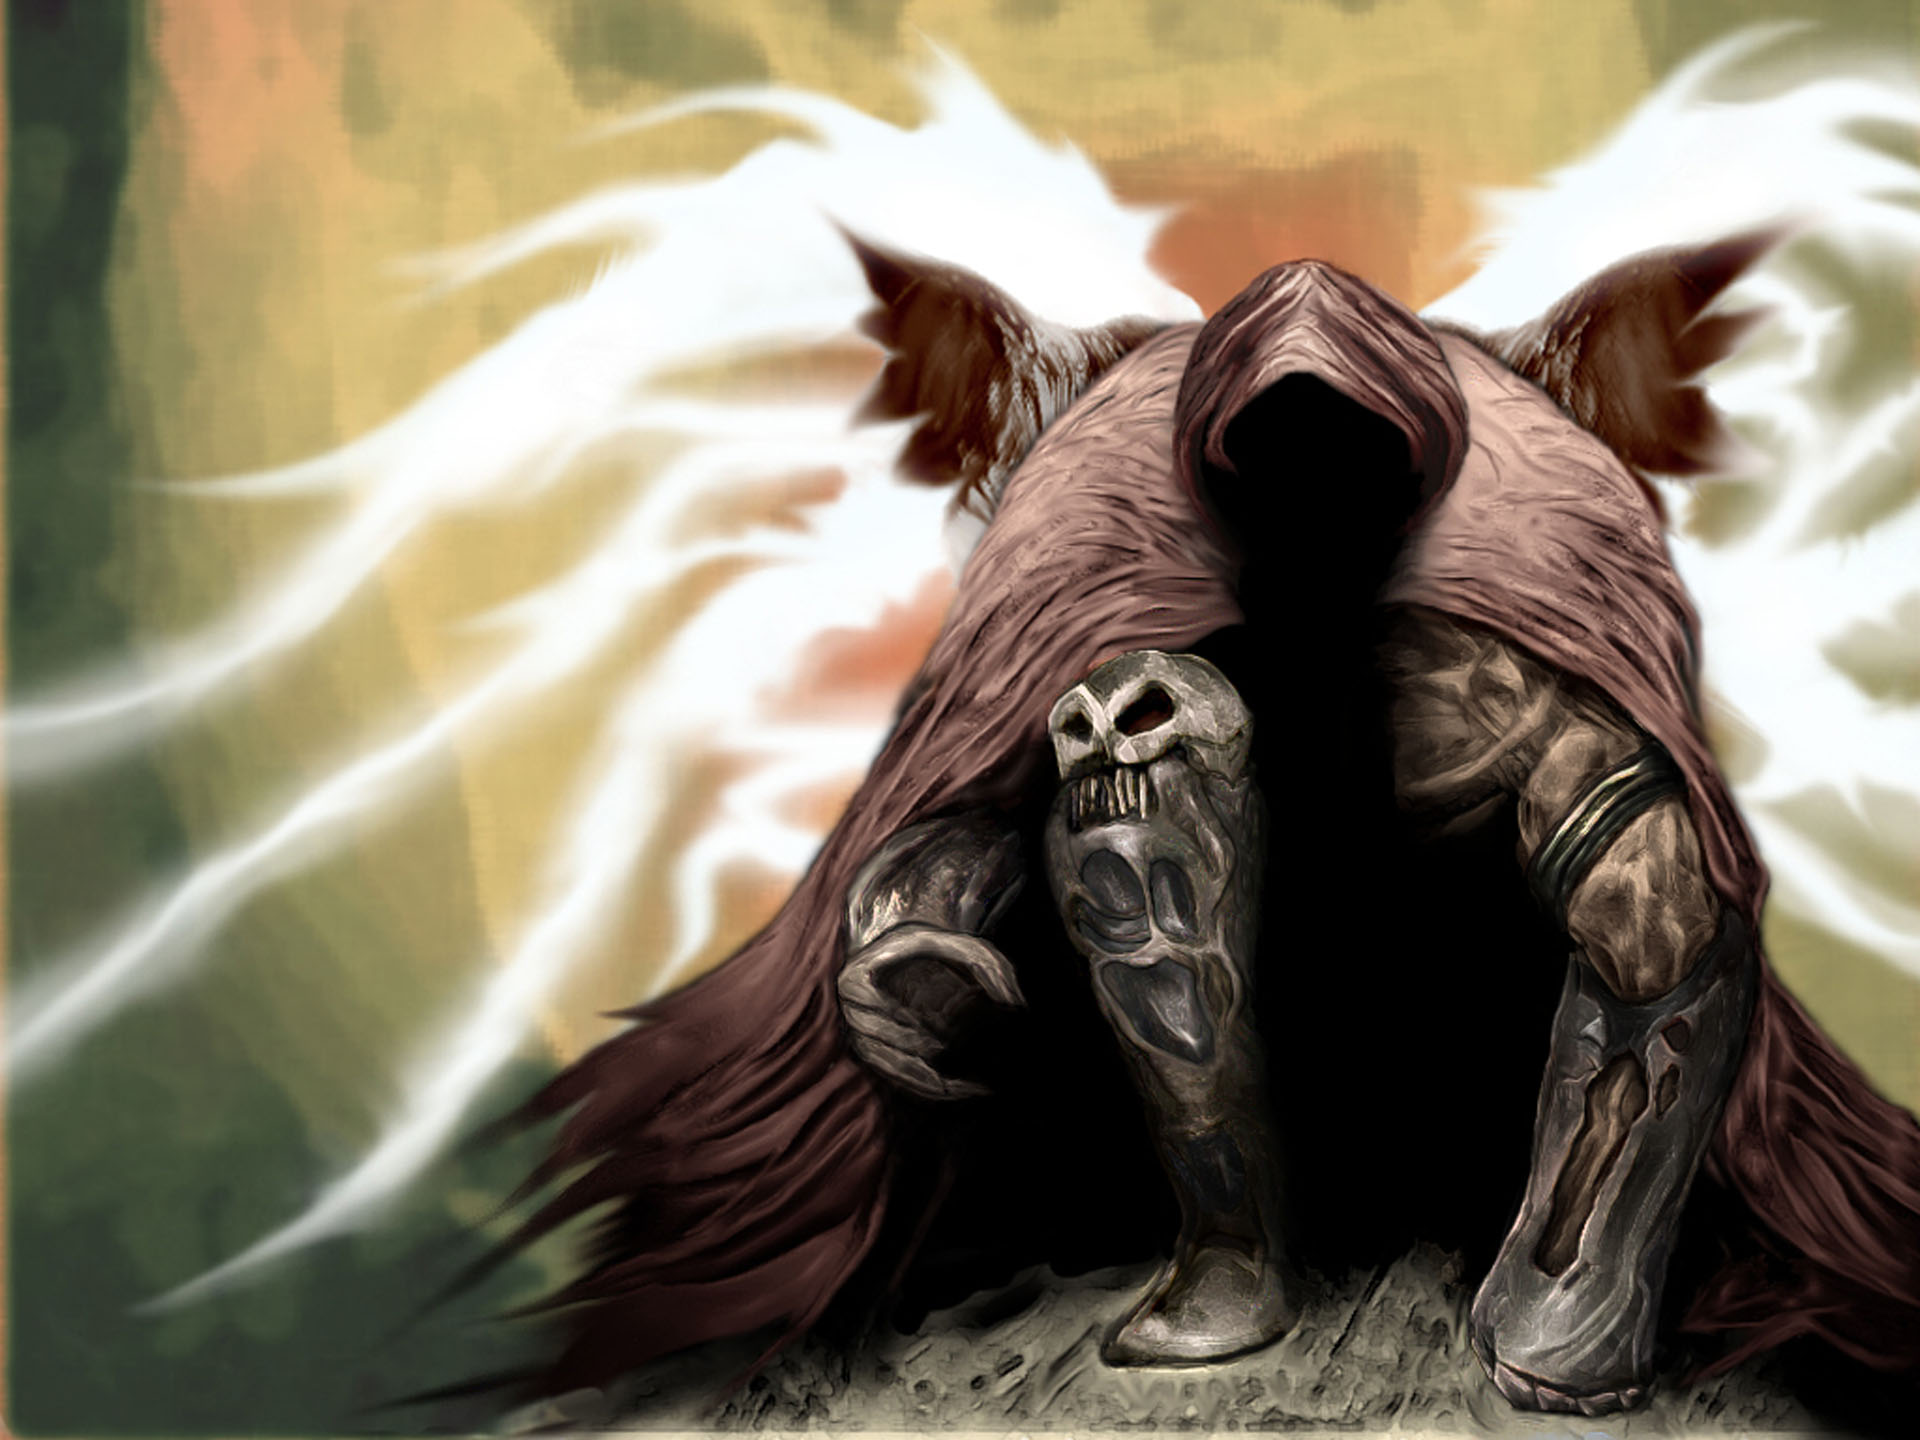 Video Game - Diablo III  Dark Angel Death Wallpaper